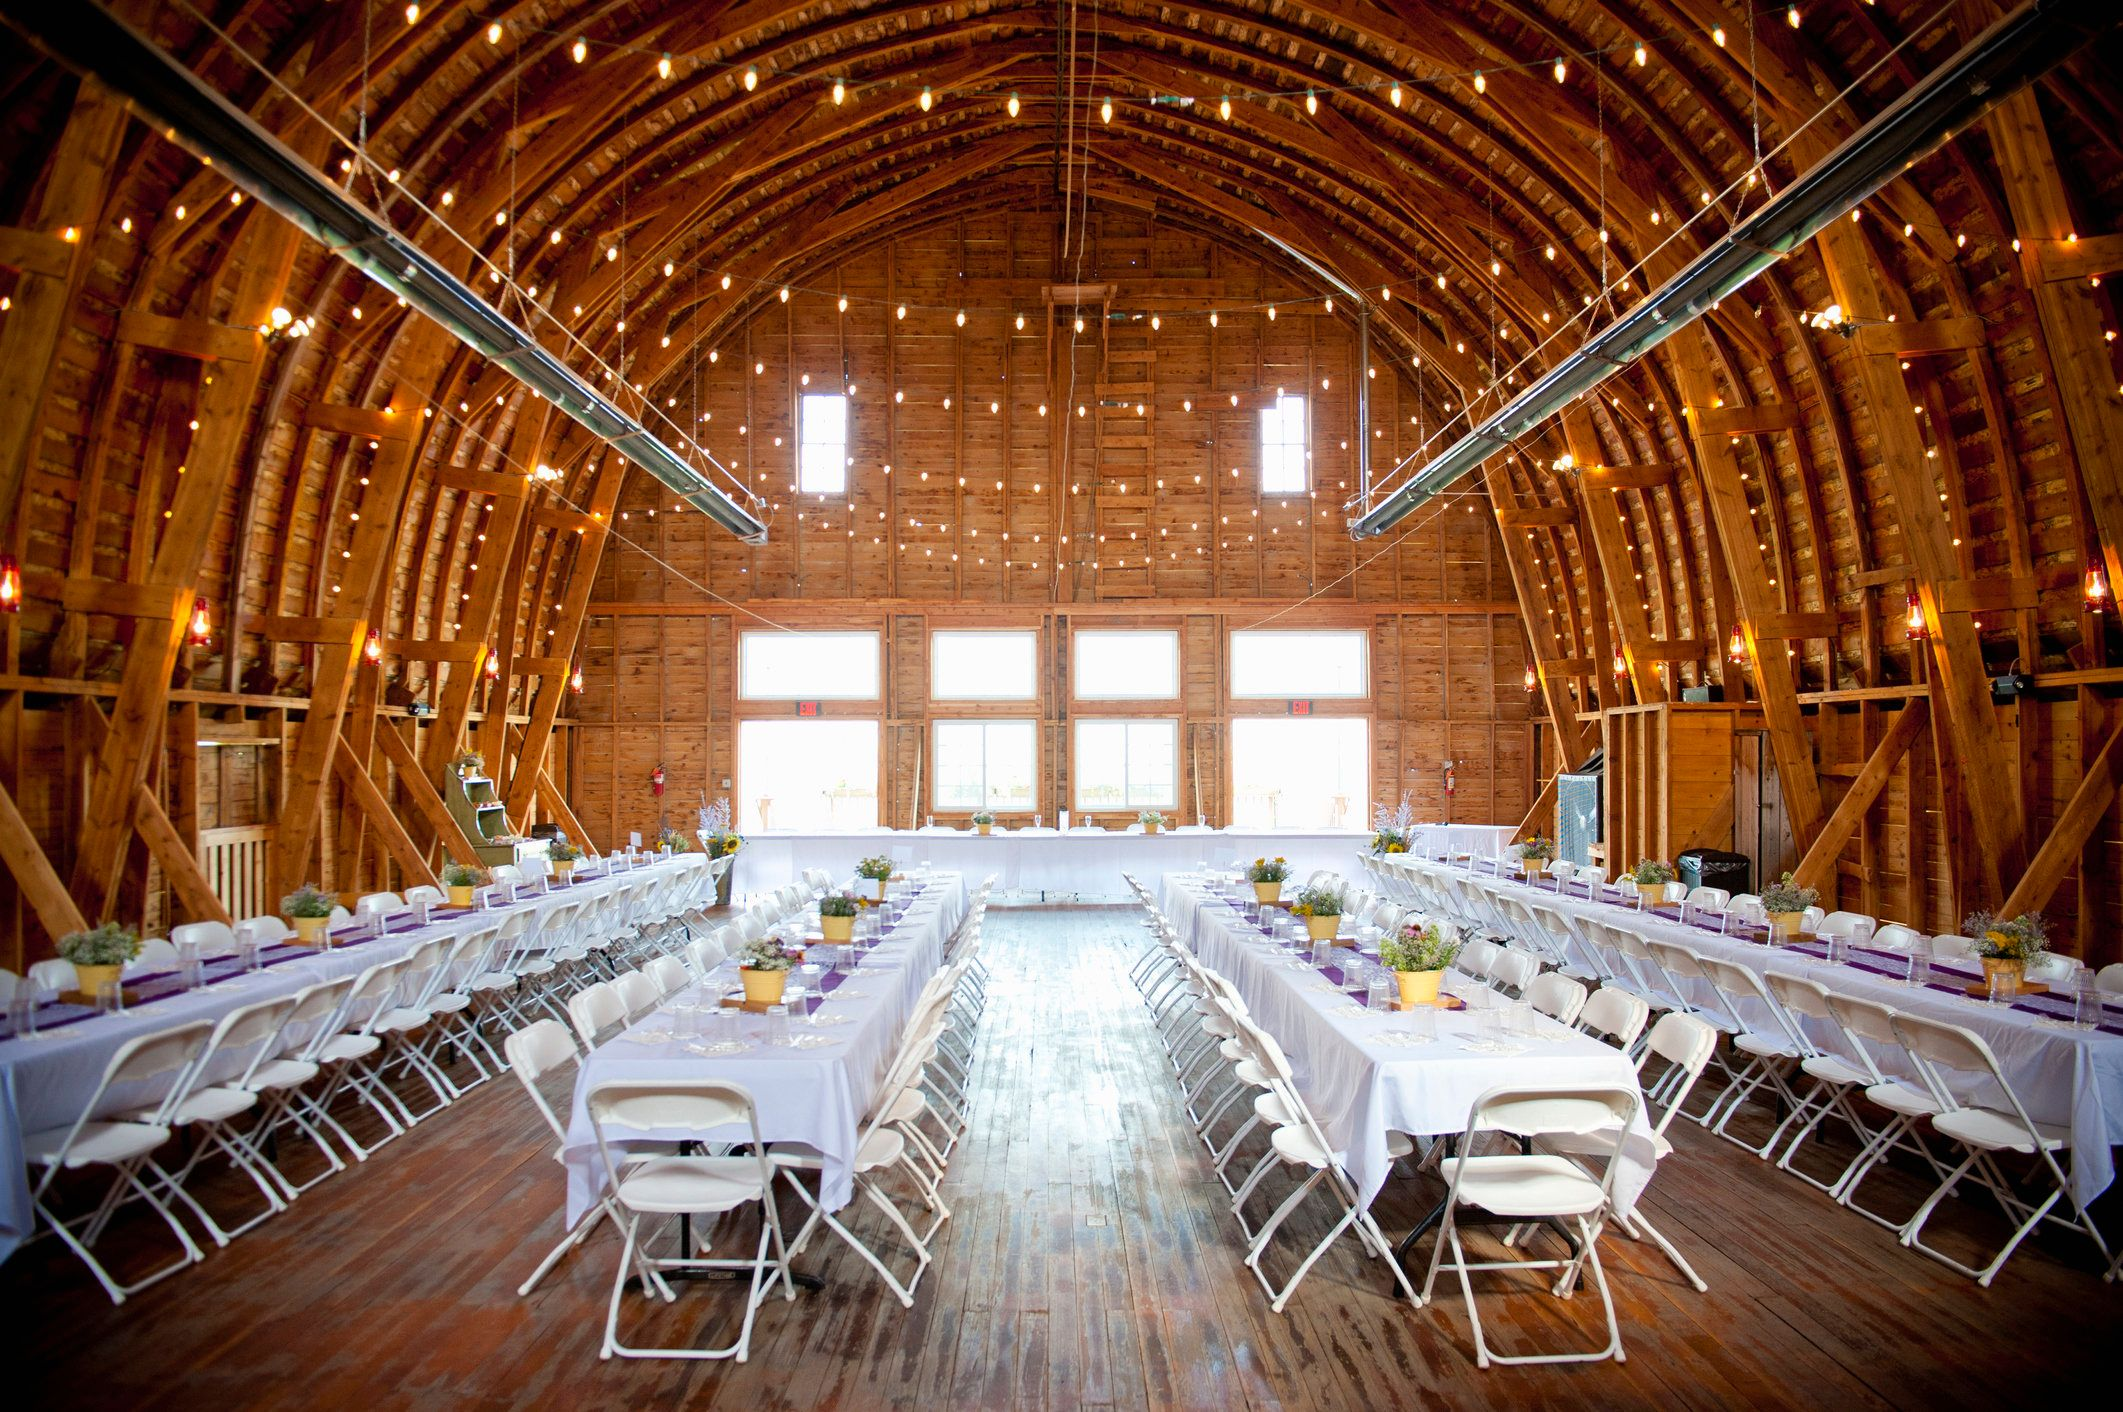 barn interior set up for a wedding reception